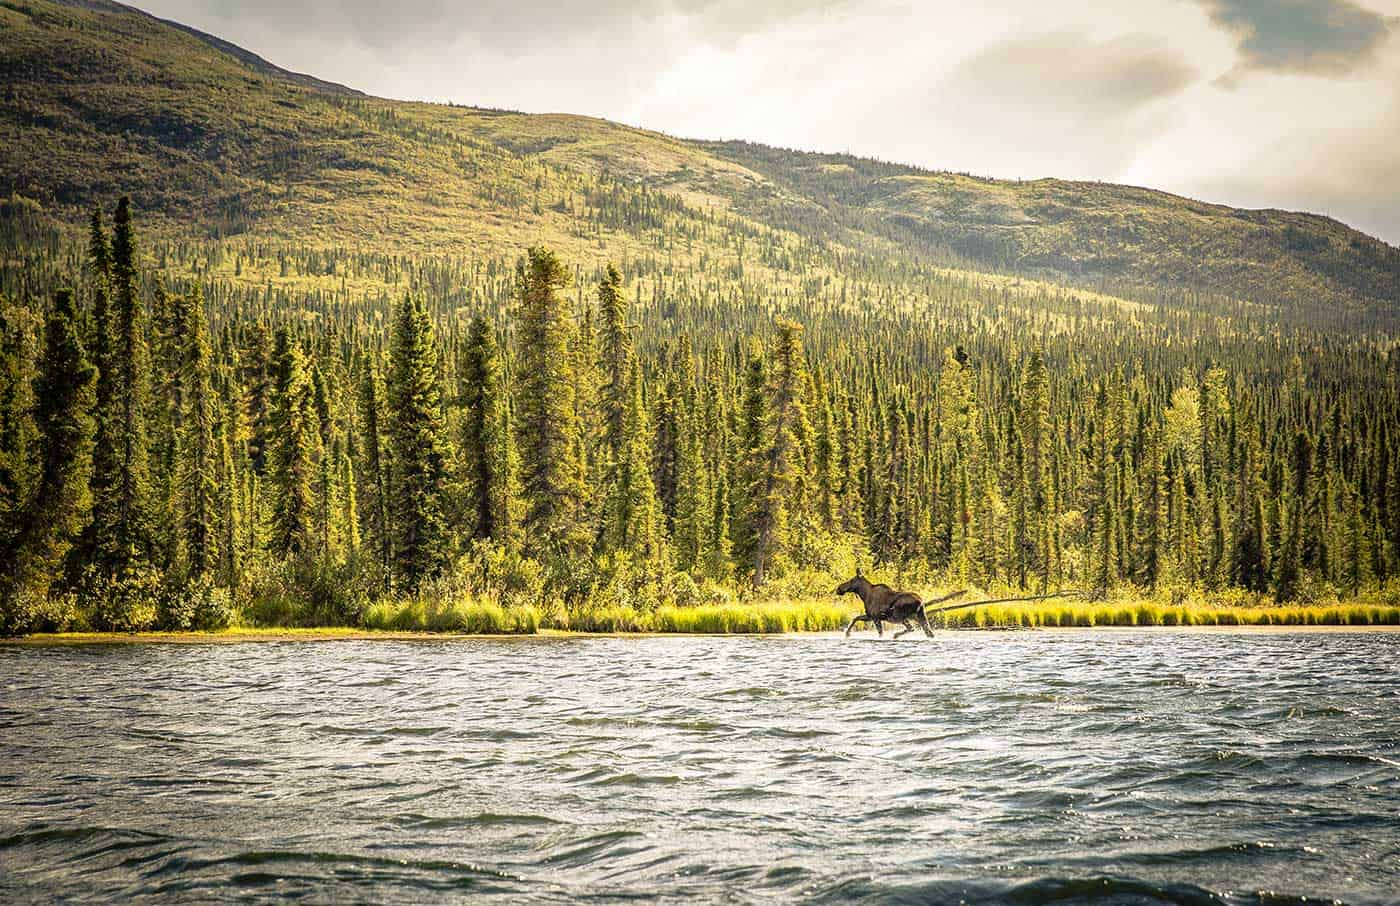 There is no shortage of wildlife in the yukon territory. Here, a rubber-nosed swamp donkey sprints across a shallow pike lake.